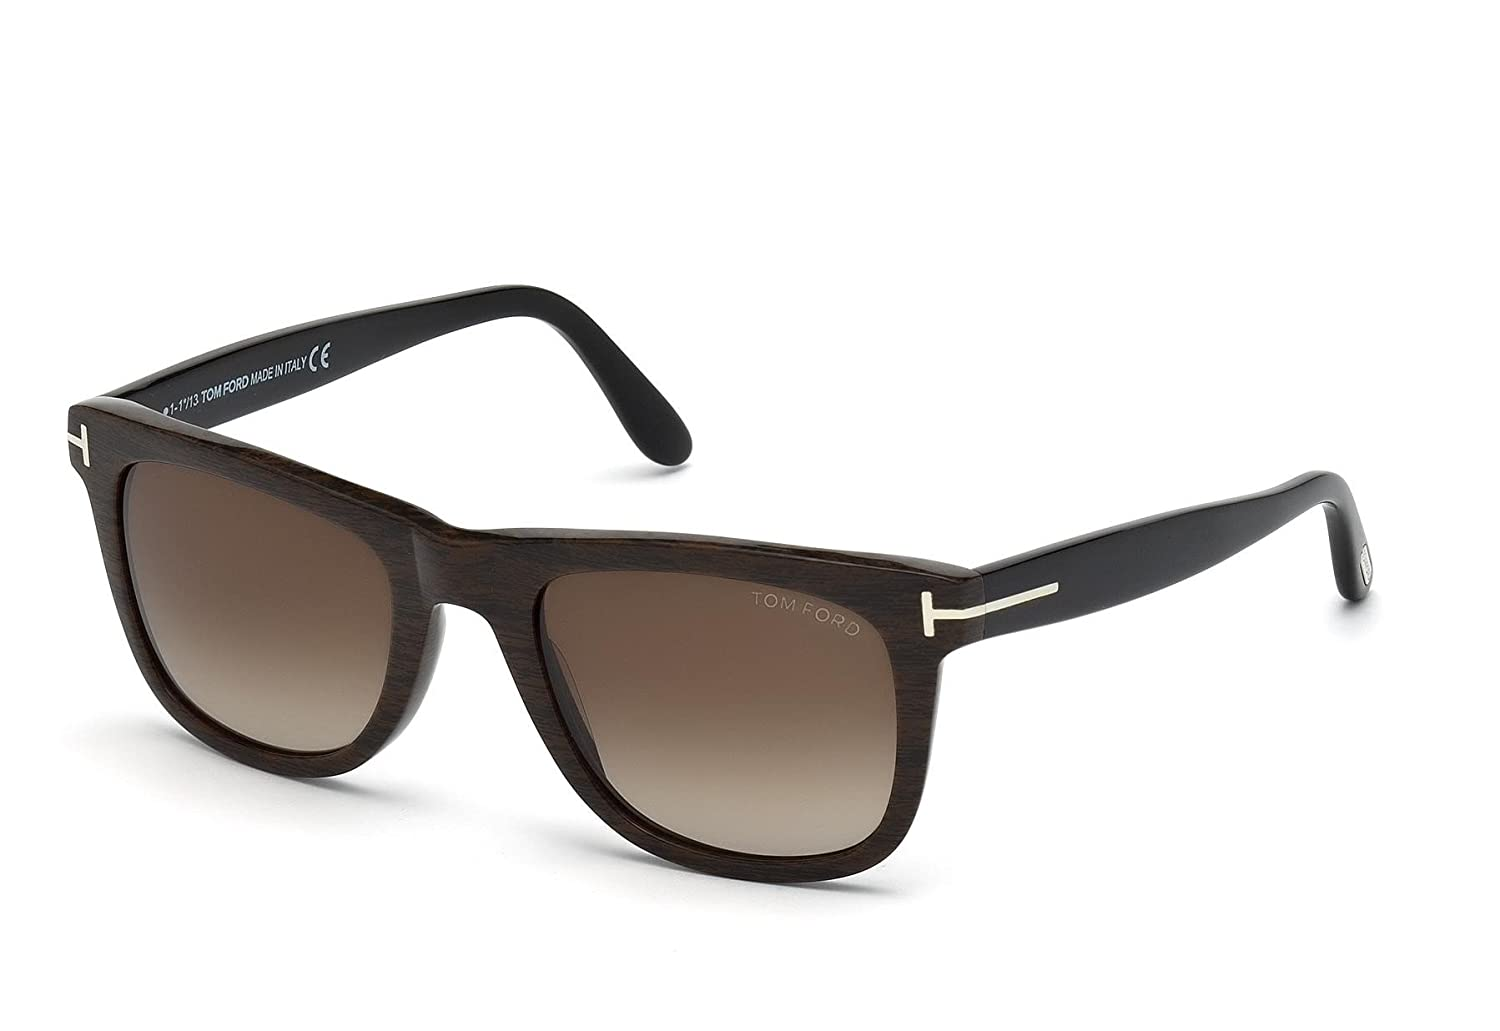 577dd93f2444 Amazon.com  Tom Ford Leo Square Sunglasses (FT0336) (05K)  Clothing